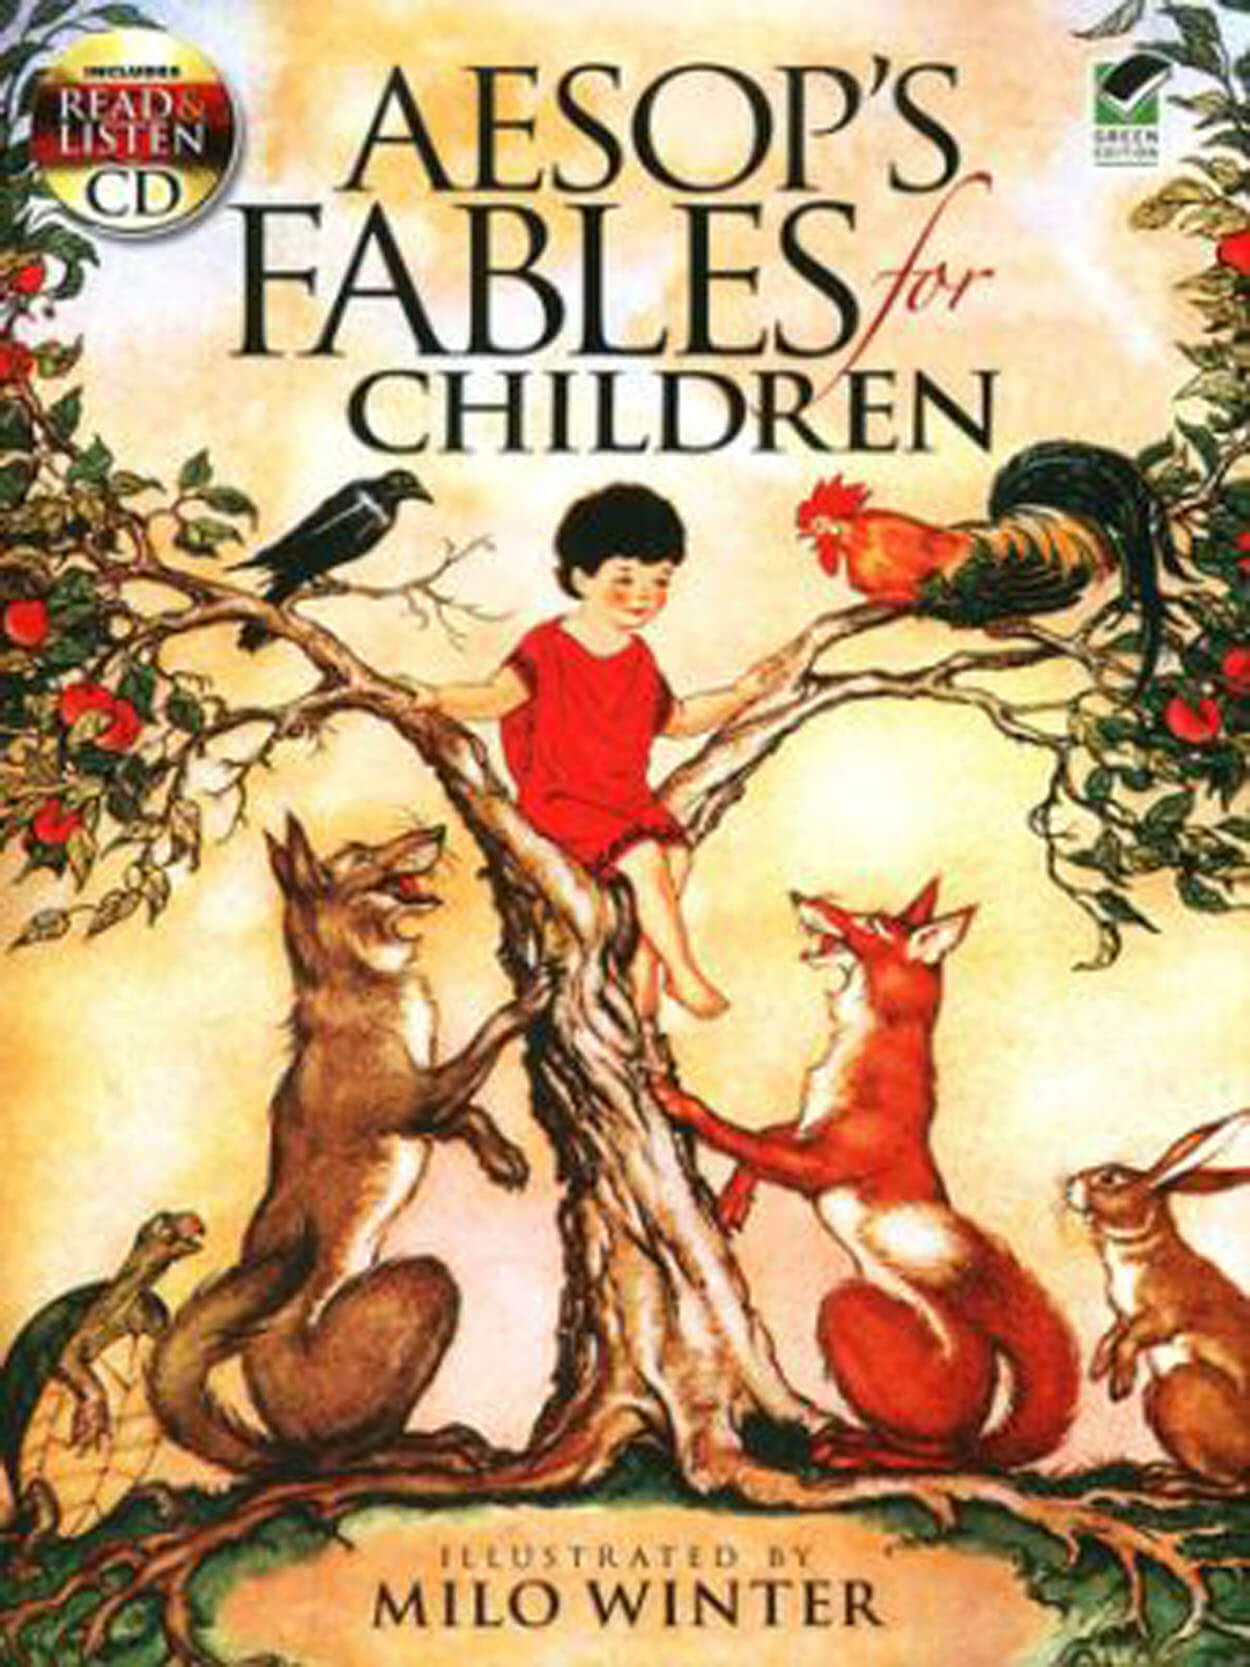 AESOPS FABLES WITH PICTURES PDF DOWNLOAD